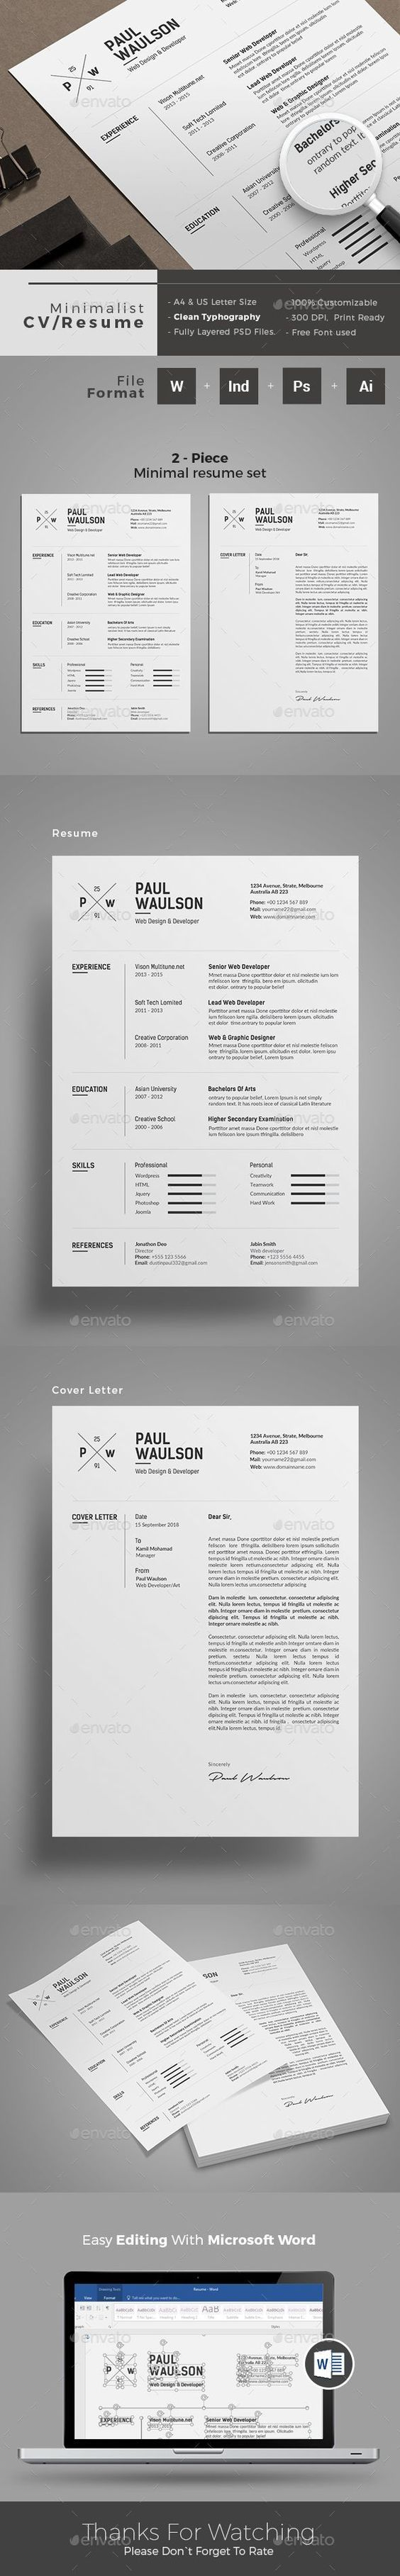 16 best Clean Resumes images on Pinterest | Resume, Resume design ...